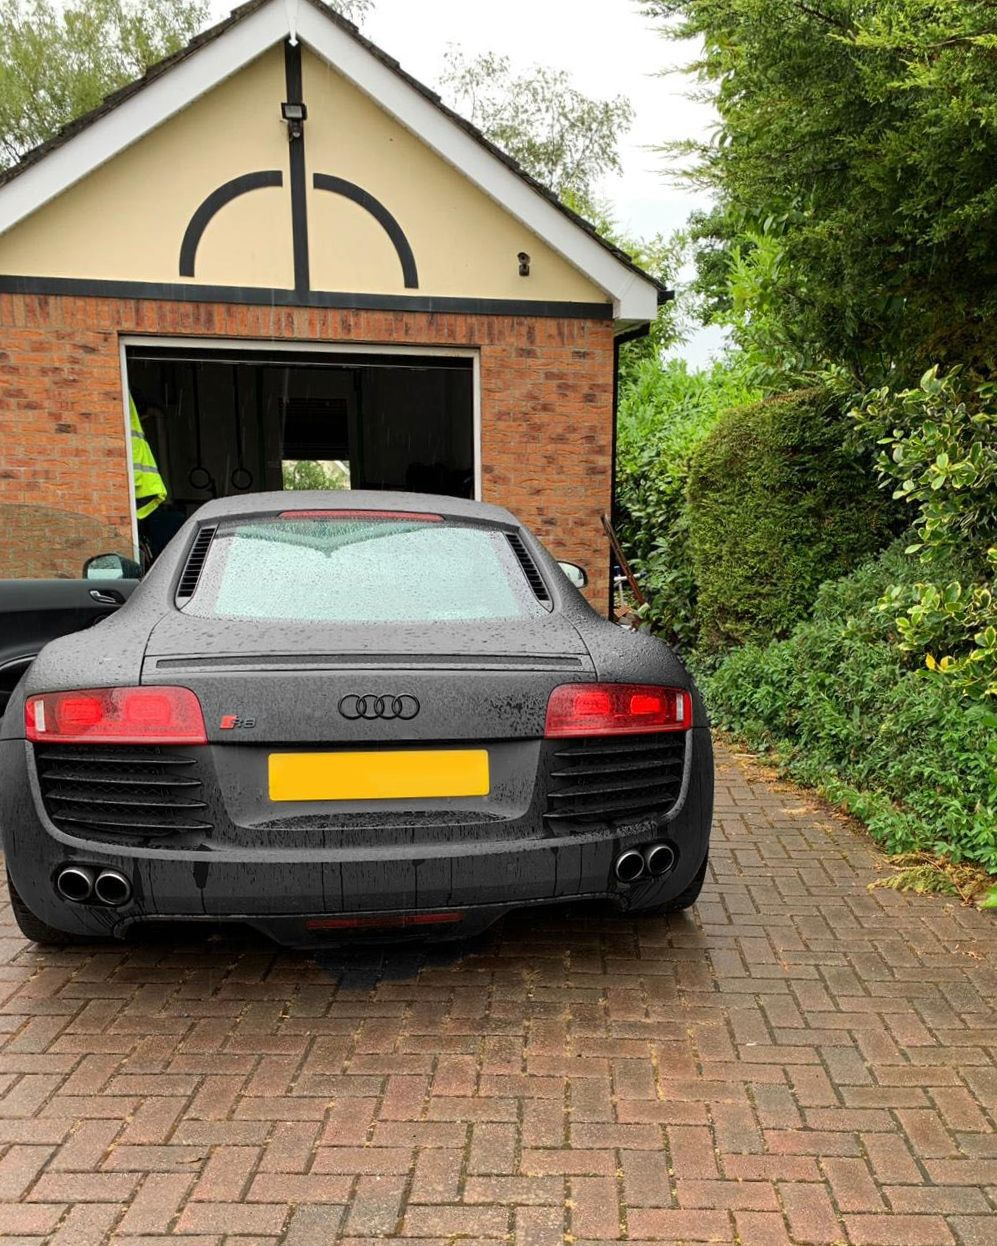 Audi R8 Matte Black in Derry before installing new radio